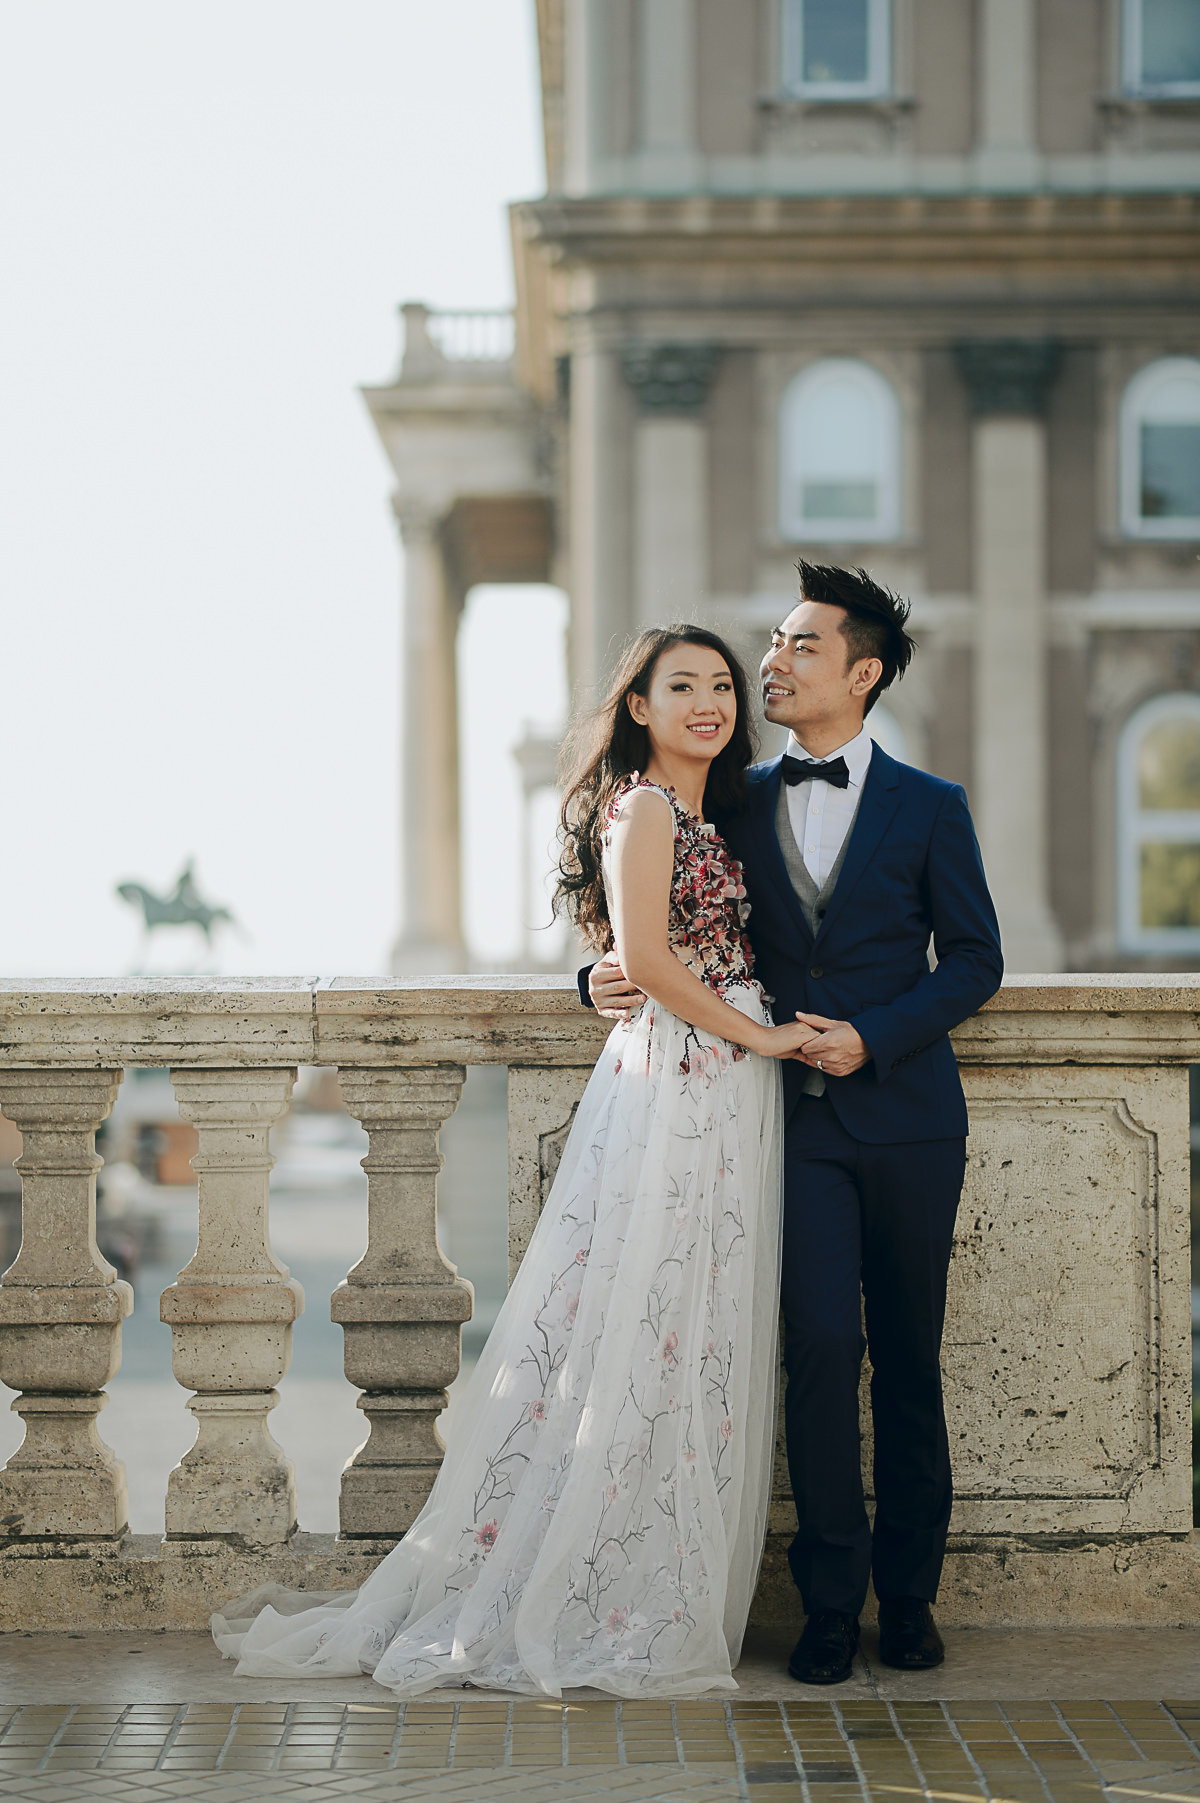 Pre-wedding photos at the Buda Castle in the early morning